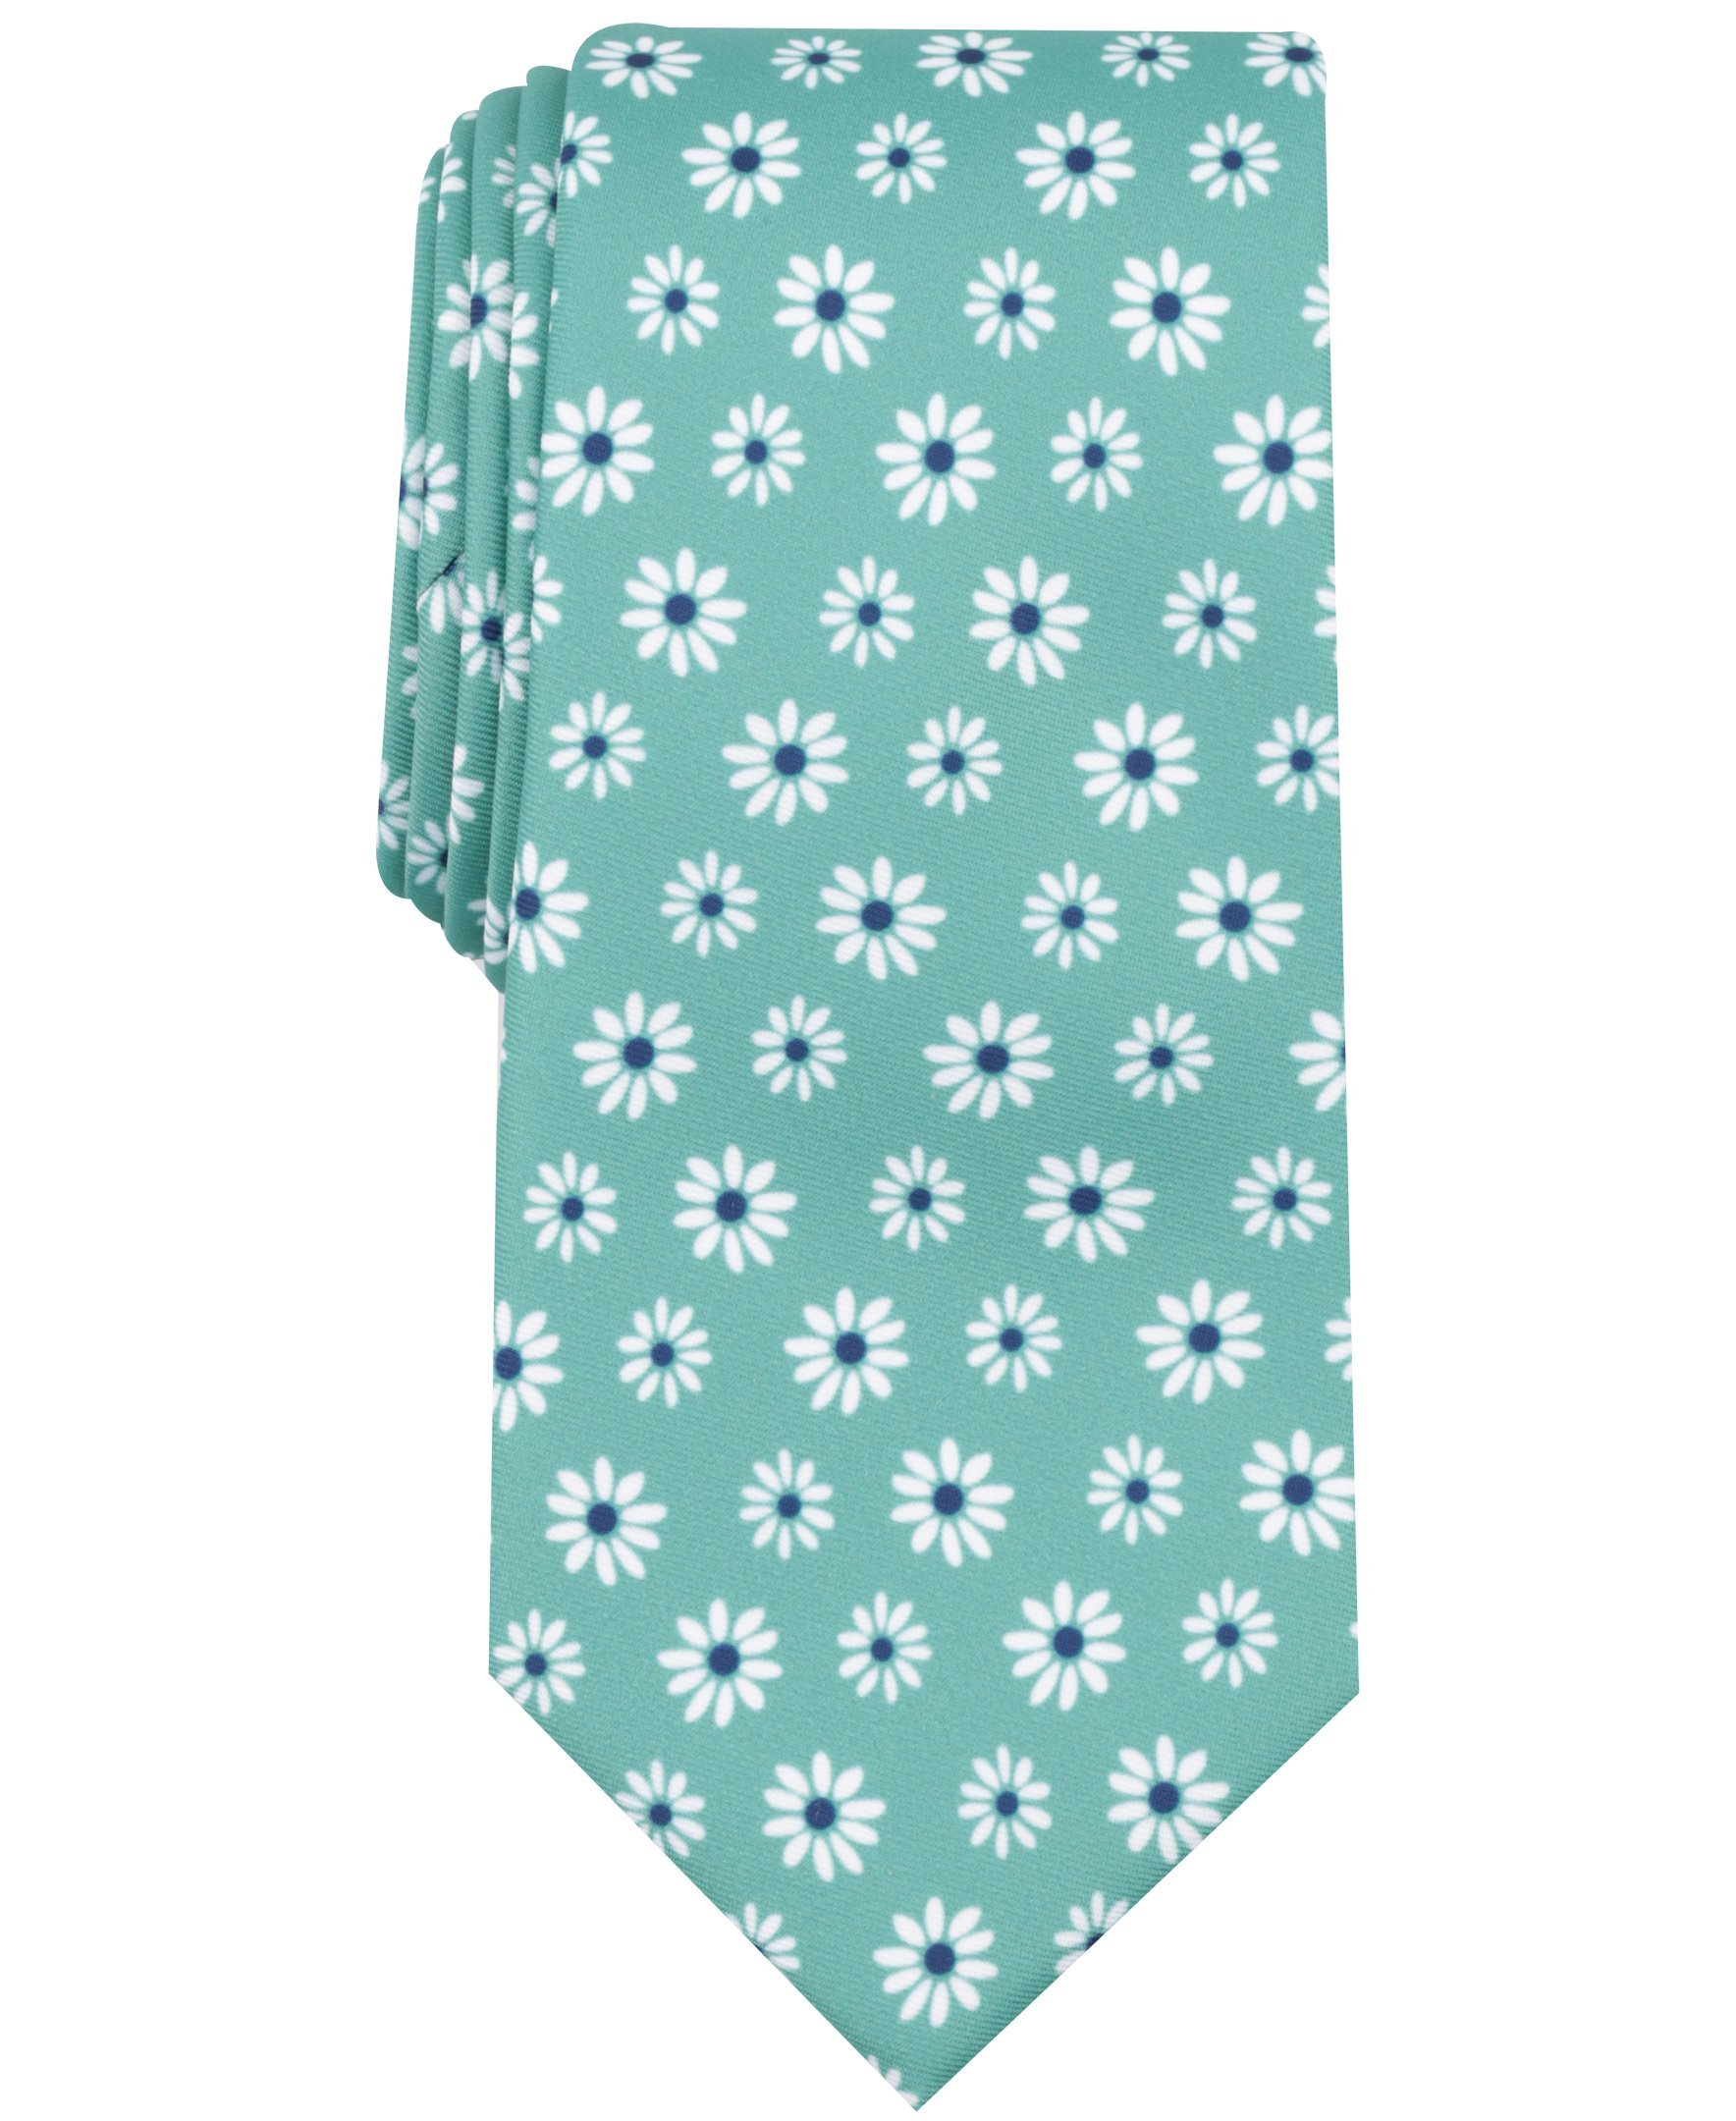 Nautica Men's Printed Conversational Tie, Light Green, One Size